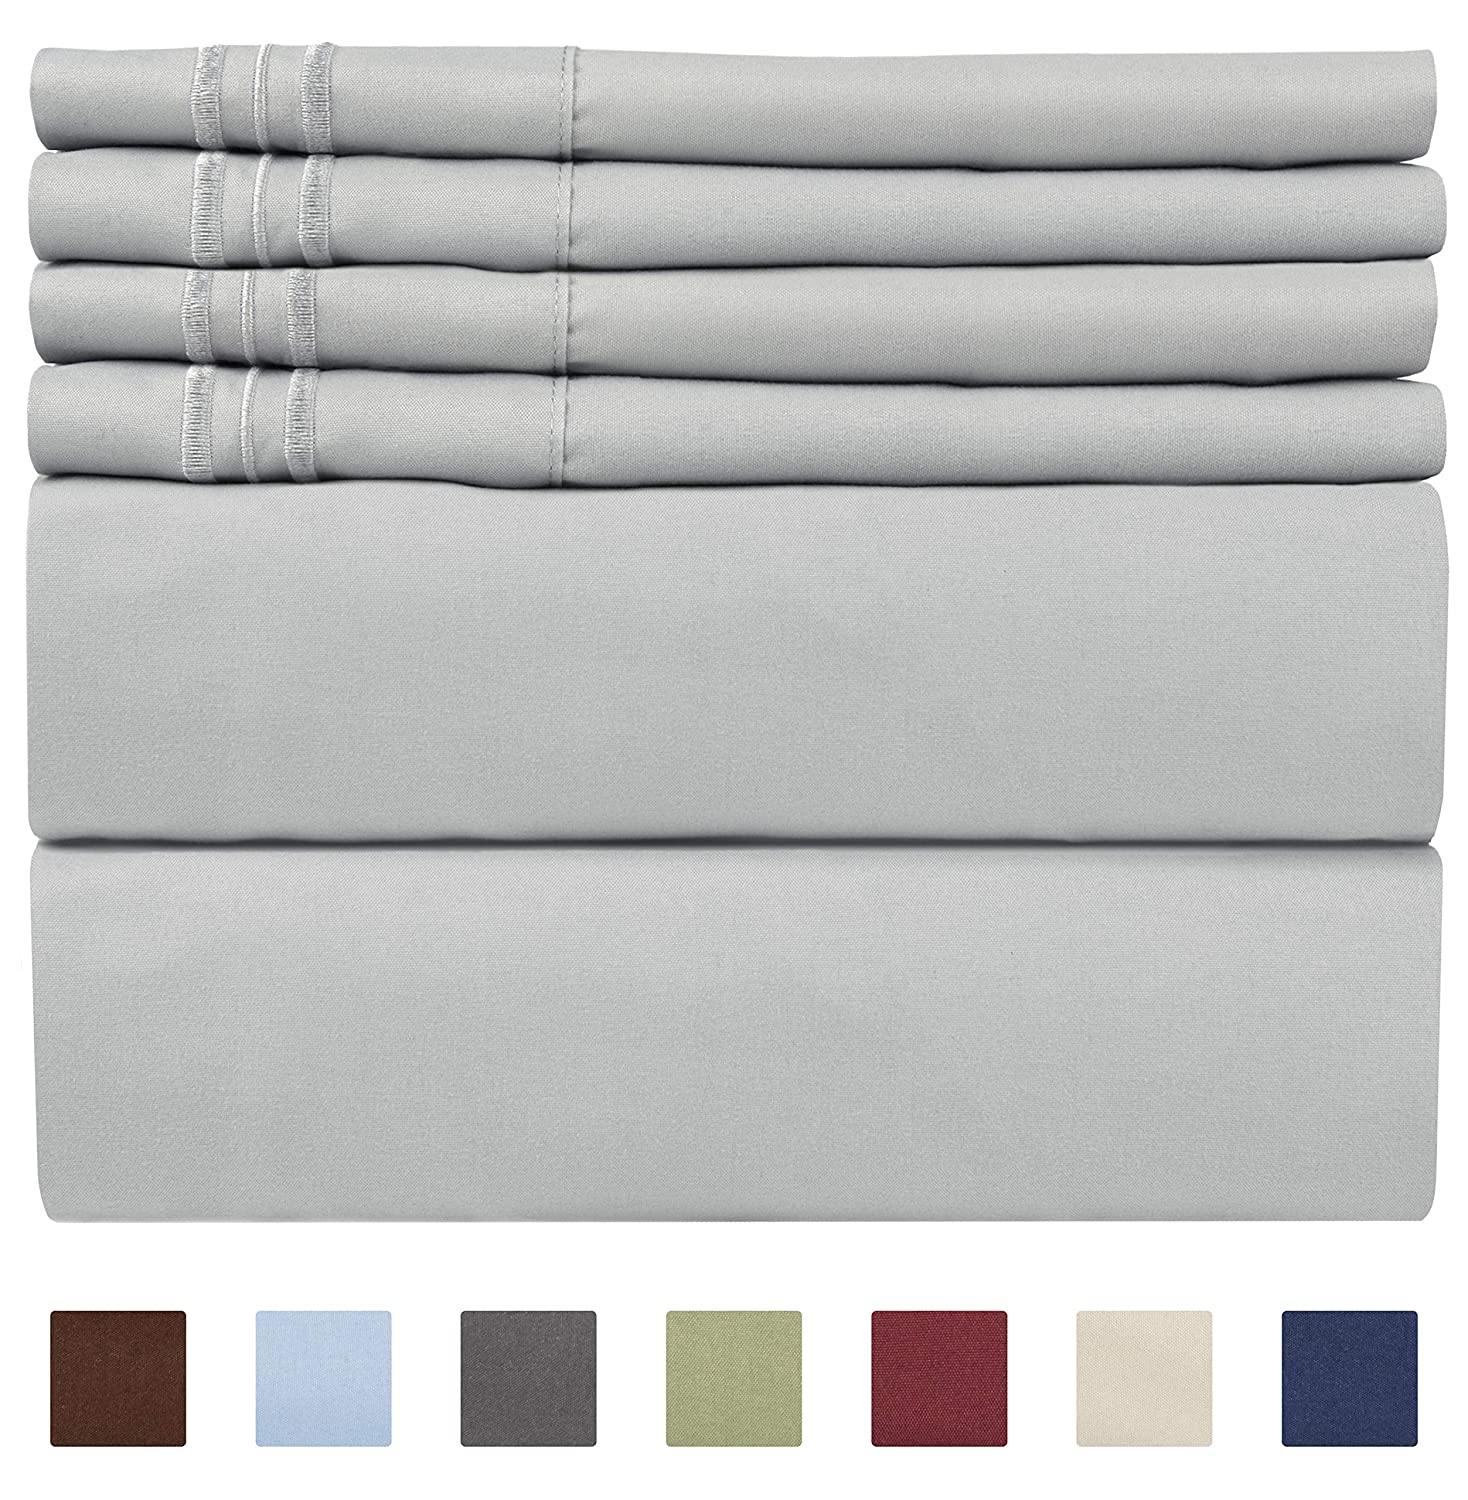 Full Size Sheet Set - 6 Piece Set - Hotel Luxury Bed Sheets - Extra Soft - Deep Pockets - Easy Fit - Breathable & Cooling Sheets - Wrinkle Free - Gray - Light Grey Bed Sheets - Fulls Sheets - 6 PC